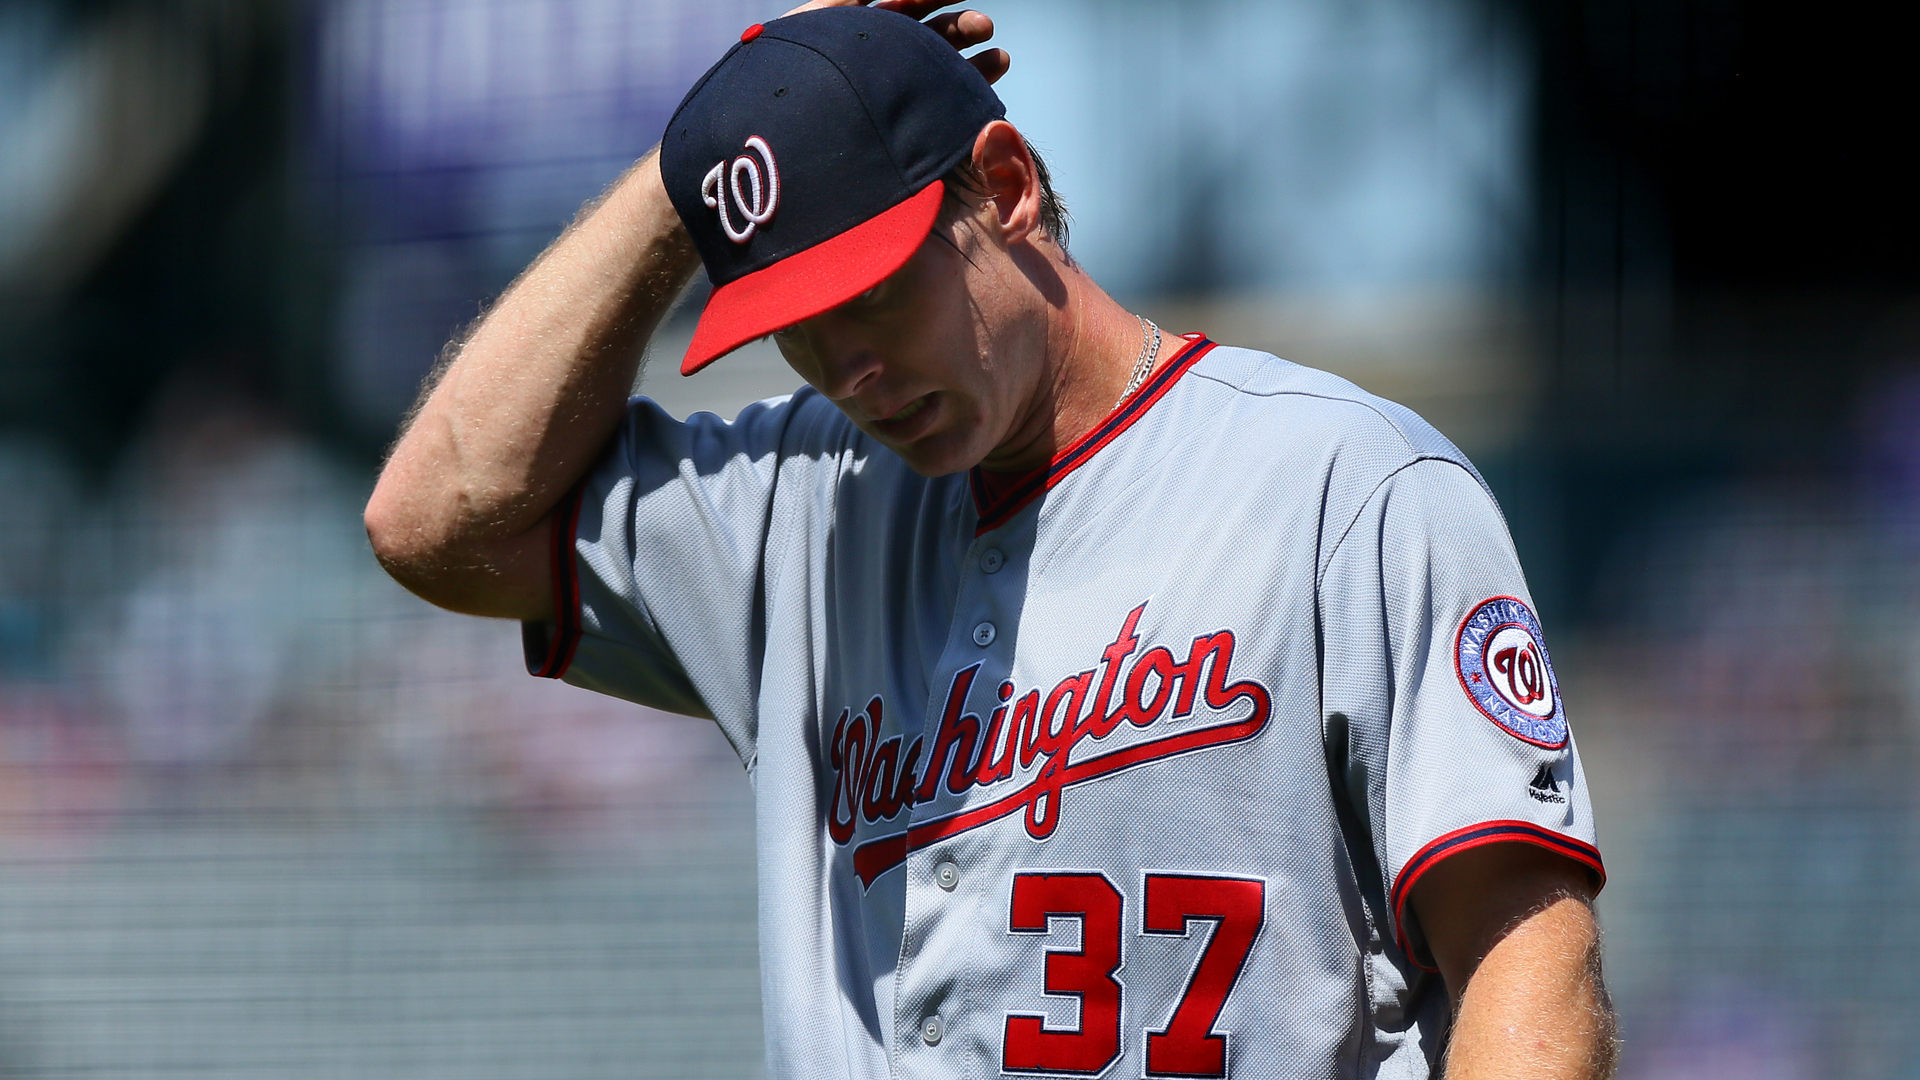 Strasburg leaves after 2 innings as precaution, Nats win